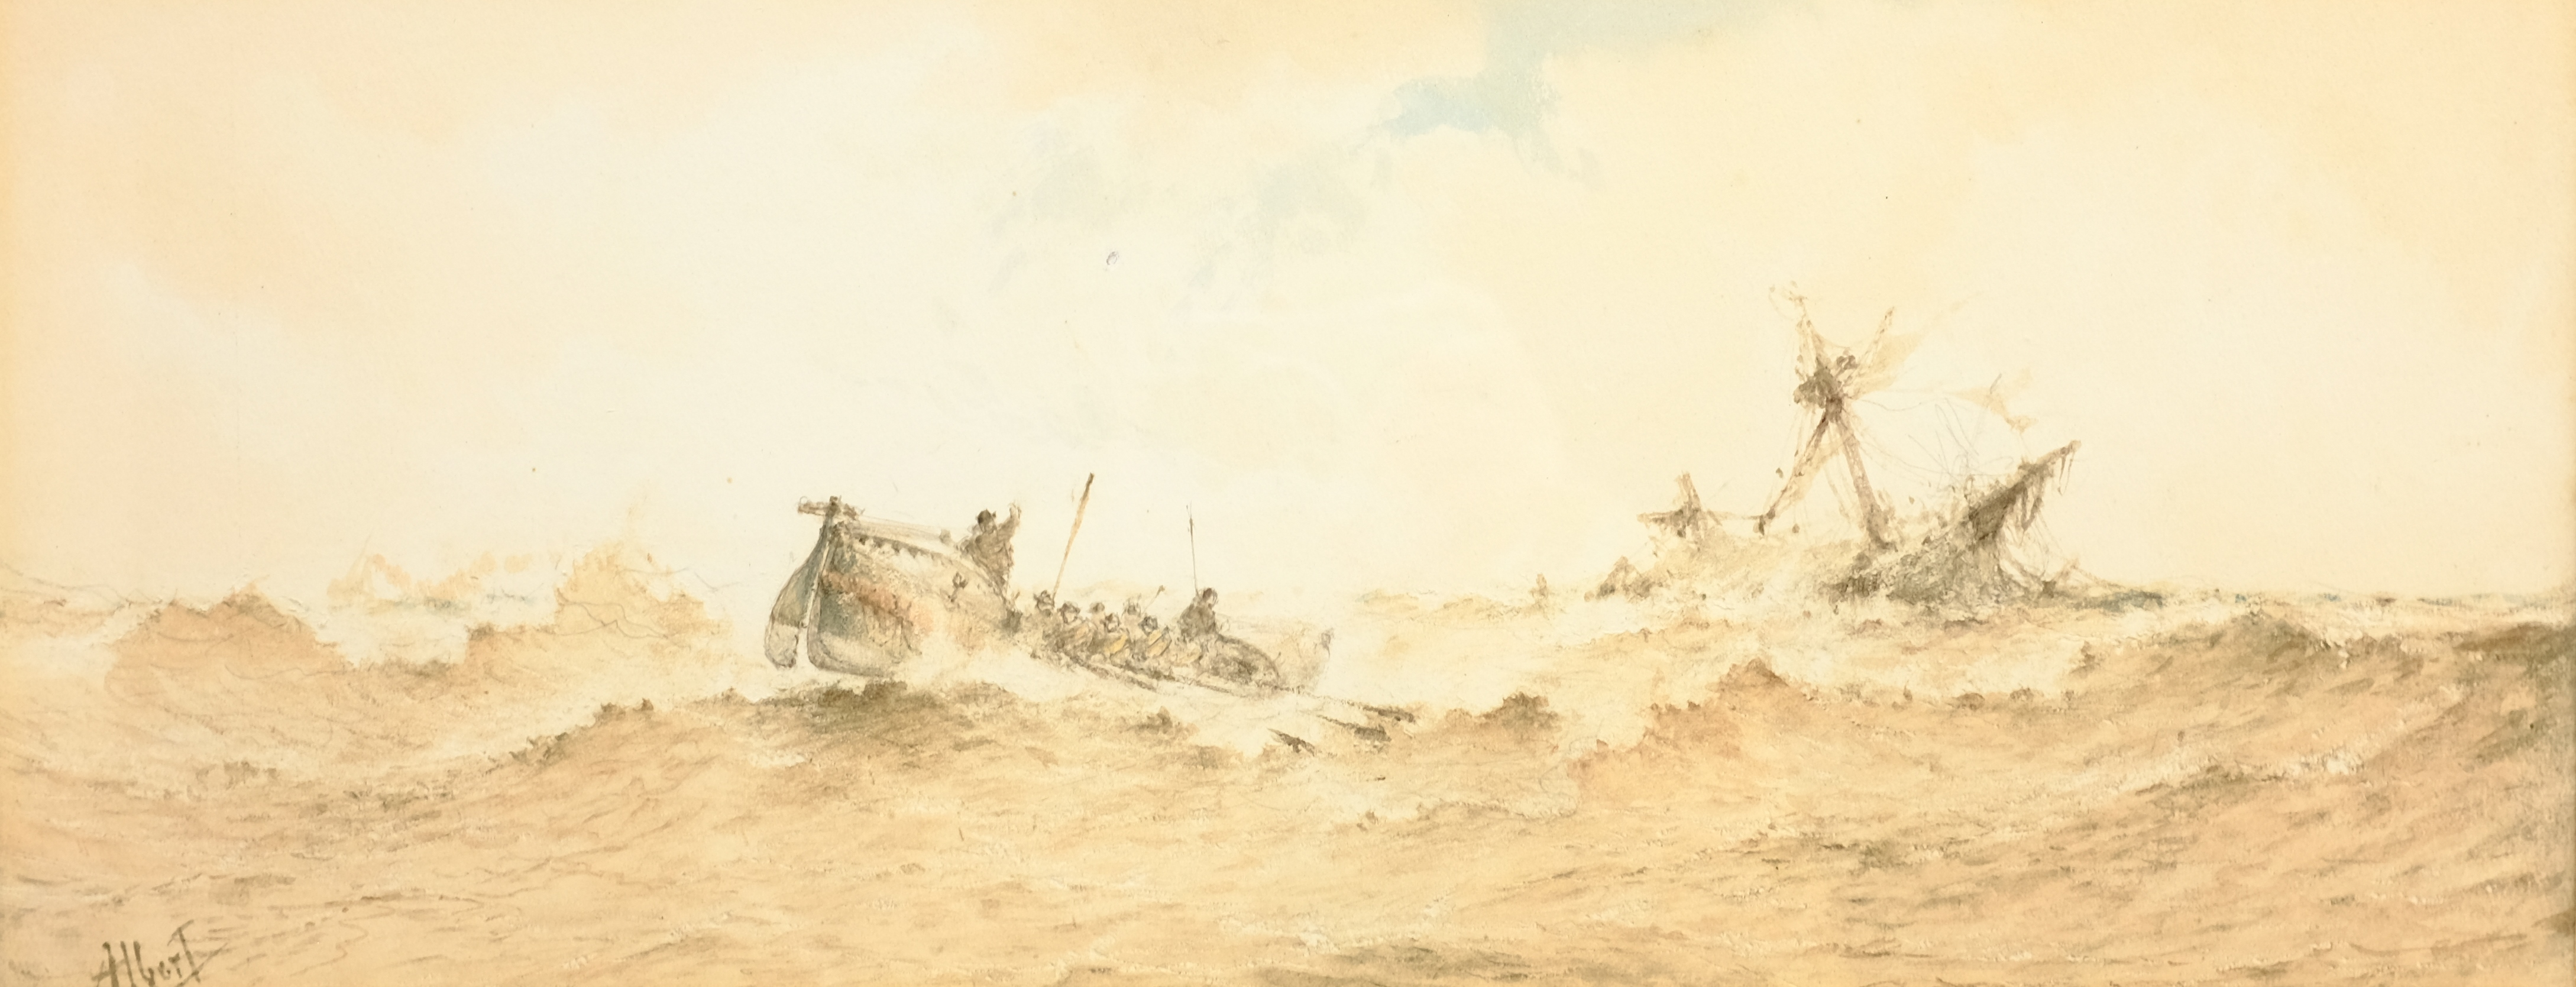 Albert Ernest Markes (British 1865-1901): 'The Rescue', watercolour signed, titled on the mount 20cm